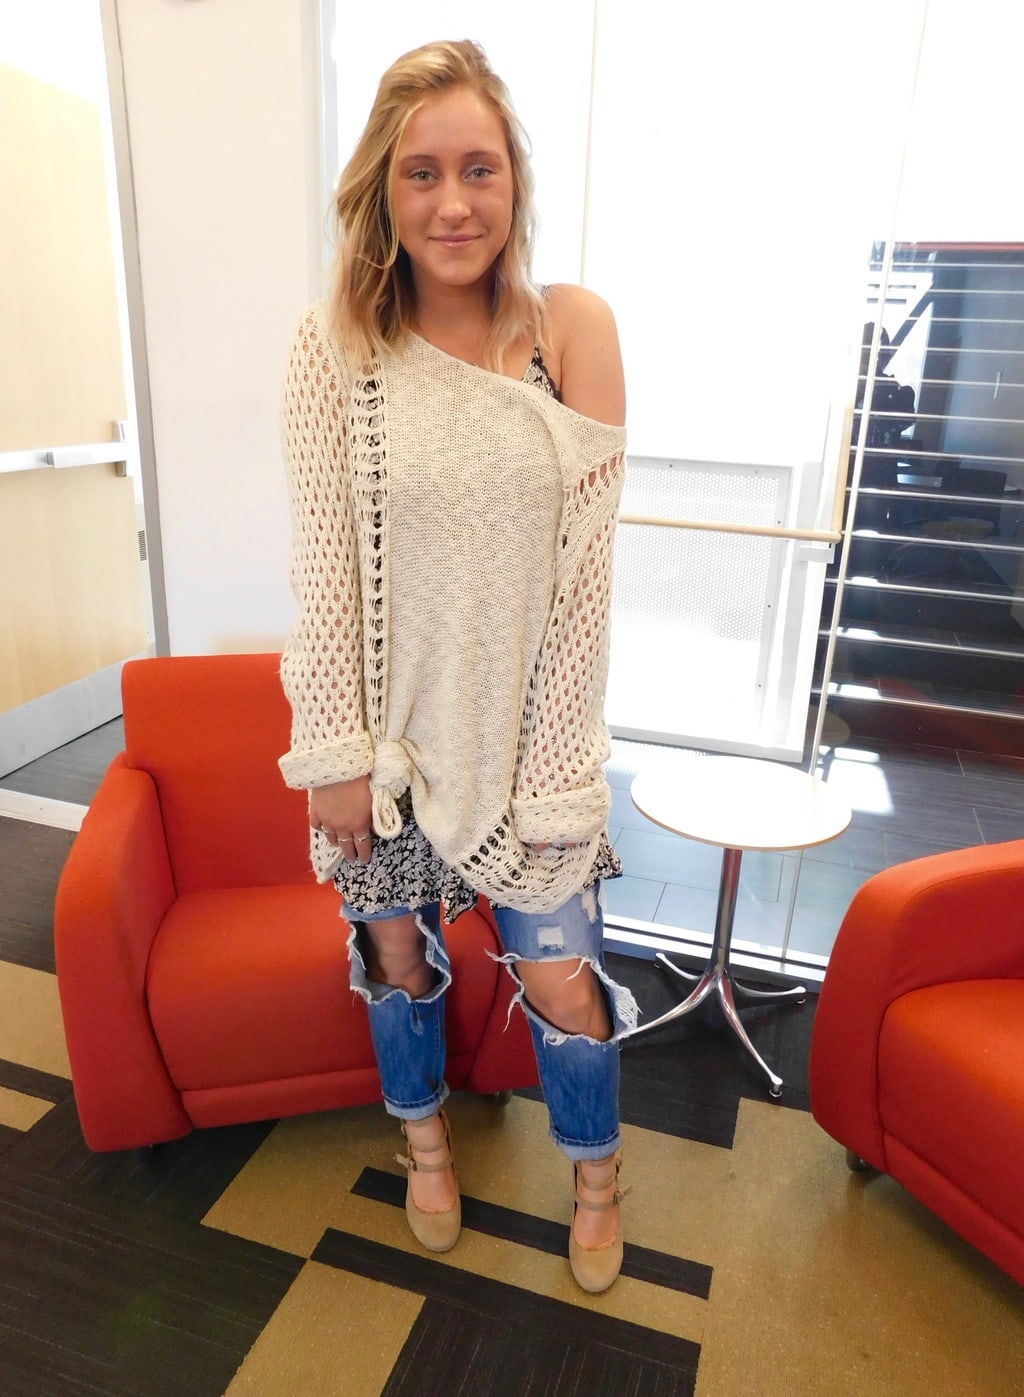 Jefferson University student Lauren looks relaxed in her ultra chunky knit sweater with various textures and designs, ultra destroyed denim boyfriend jeans, and round toe double-strap mary jane oxford heels.